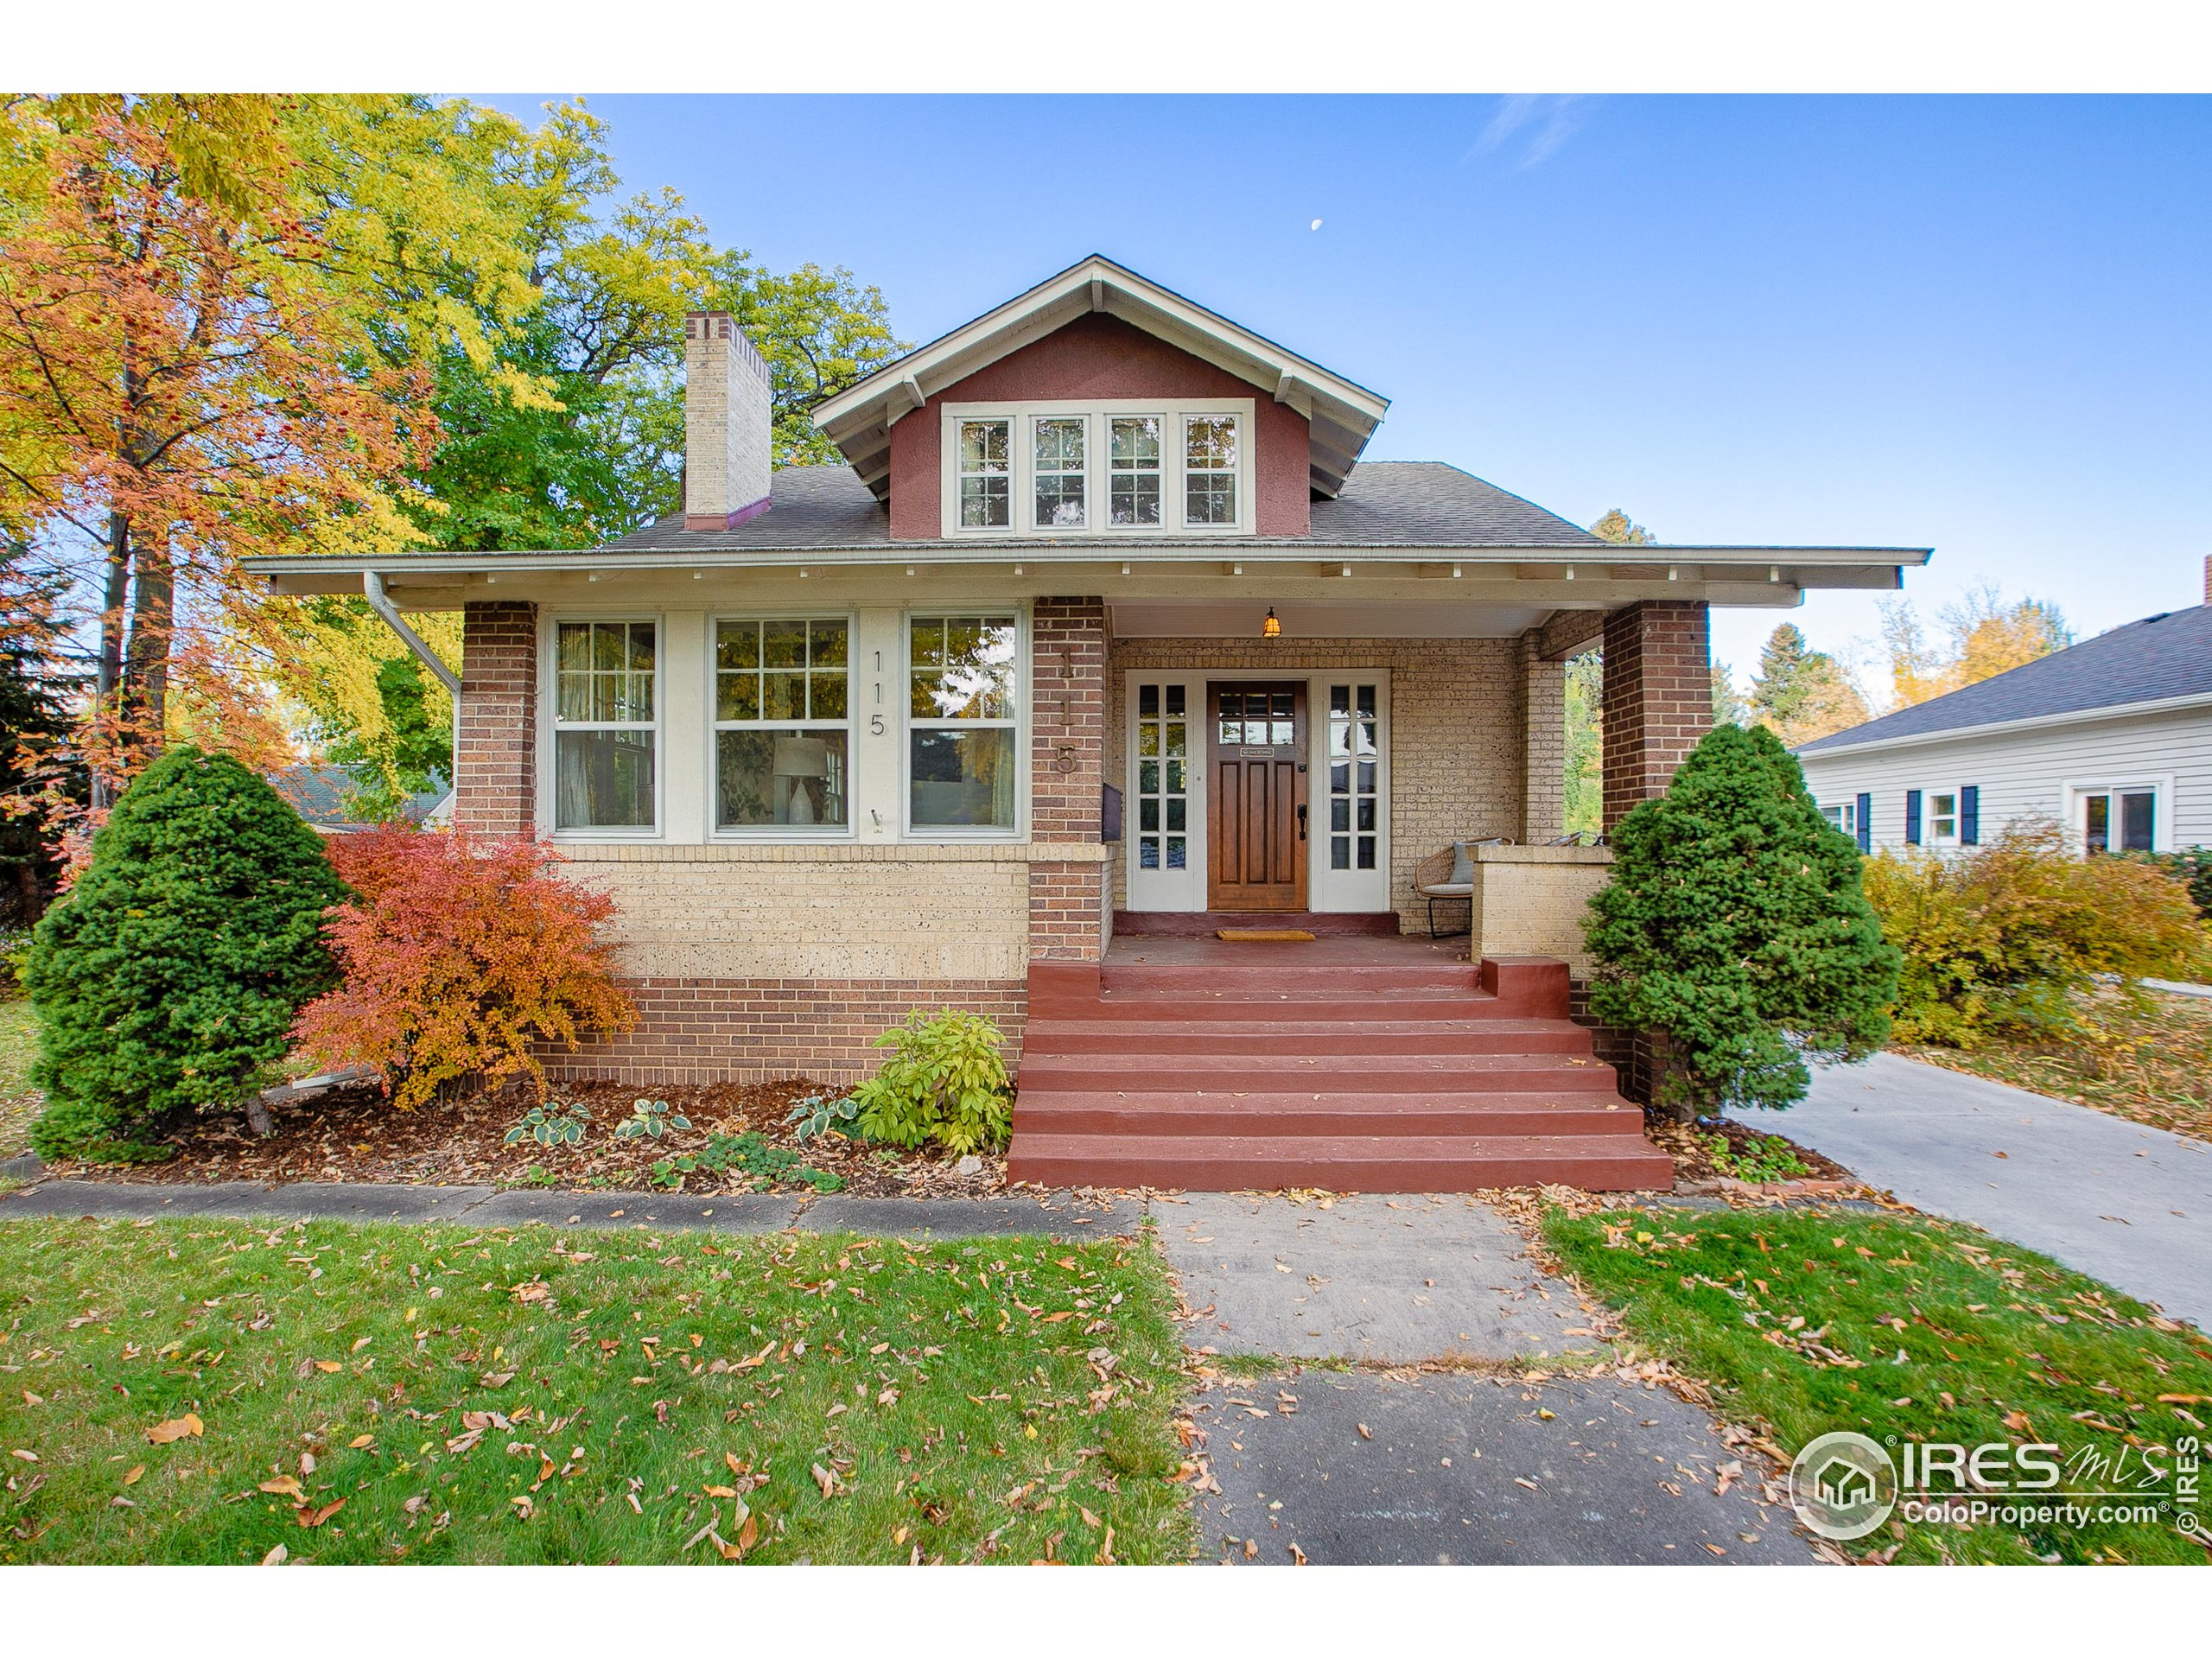 Stately & Stunning Craftsman style, all brick home. Built circa 1919, this stunning 1 1/2 story home features 4 bedrooms (1 non-conforming) and 2 full bathrooms punctuated by period specific finishes. The main floor features a gorgeous sunroom, open floor-plan, which connects the sun room, living room, dining room & kitchen. Located to the north of the kitchen is 2 bedrooms, an office/flex space and 1 of the full bathrooms. The 2nd story of this home contains the Primary Suite. A glorious retreat measured at 702SF. This space offers a walk-in closet, a secondary closet and an updated full bathroom. Also contains a partially finished basement area w/ living room, fireplace, additional non-conforming bedroom/office area, storage space, laundry & mechanical room. The basement has 2 access points w/ a staircase leading to the backyard/sunporch. The backyard is private, lovely and well-maintained.  Steps from Downtown, Mountain Avenue, Little on Mountain, City Park and Beaver's Market!